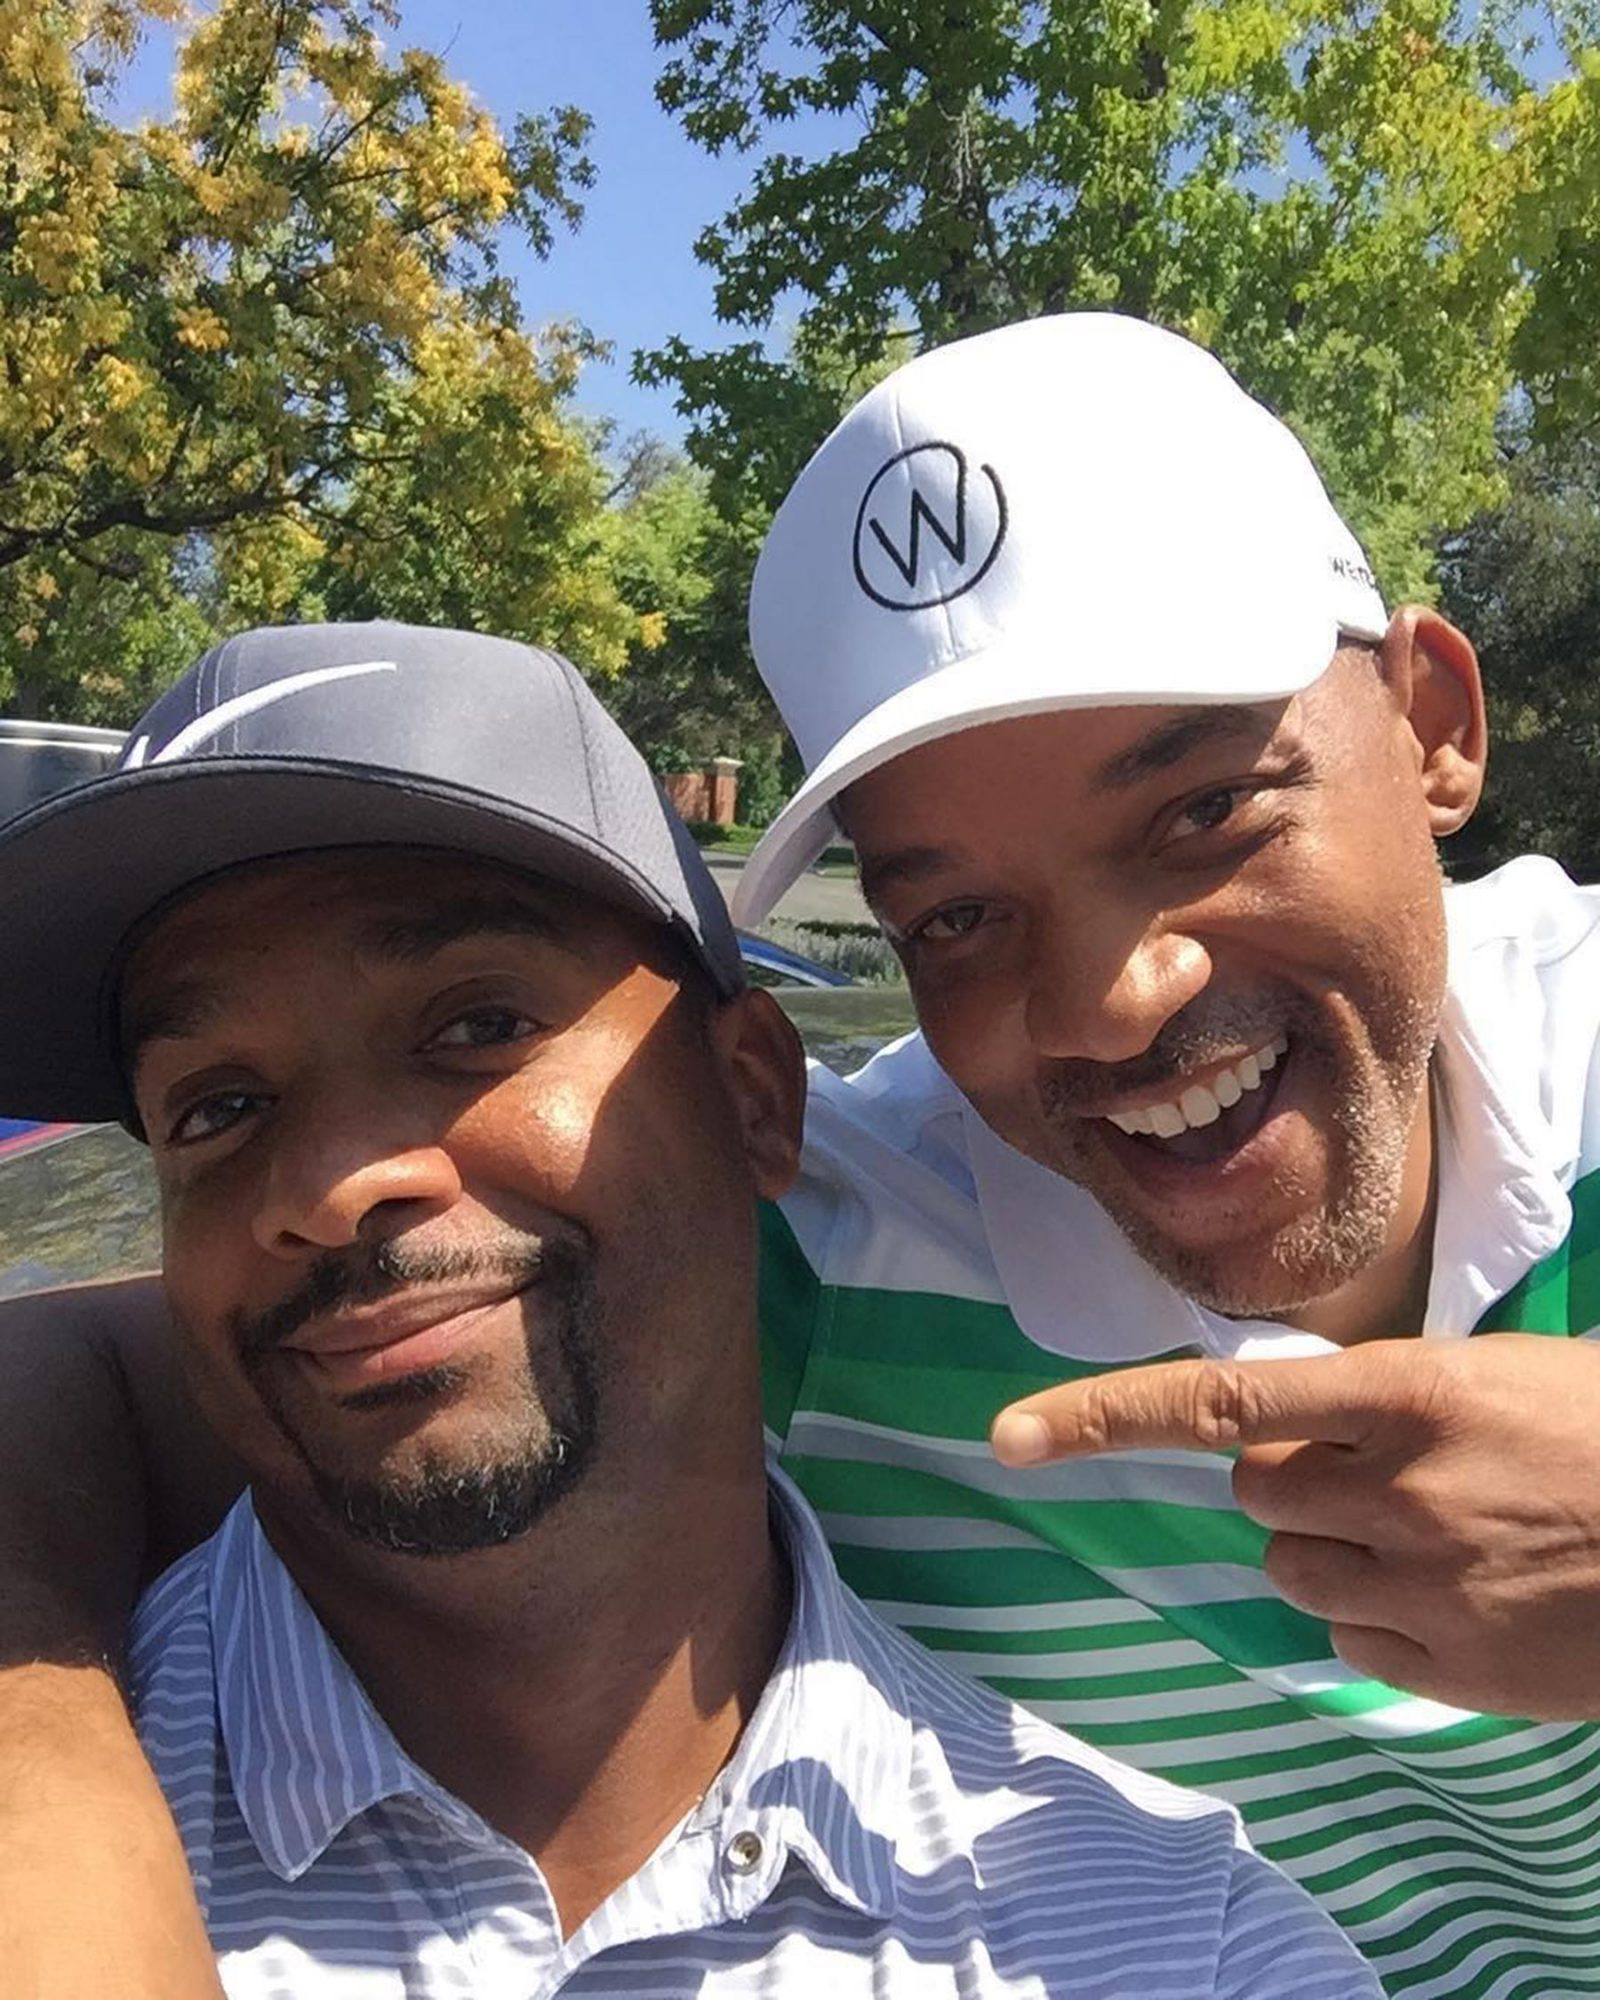 """Twenty-two years afterThe Fresh Prince of Bel-Airended its run on television, Carlton and Will were back together again - chilling out, maxing, andgolfingall cool! In September 2018,SmithandRibeirogaveFresh Princefans a surprise when they posted a photo together on Instagram. Smith, who pointed to his former costar and held his other arm around him, referred to Ribeiro as """"one of my favorite people on this Whole Damn Rock.""""                             Ribeiro wrote an endearing message of his own to his on-screen cousin, captioning hispost, """"Had a great time this morning playing with my boy @willsmith."""""""